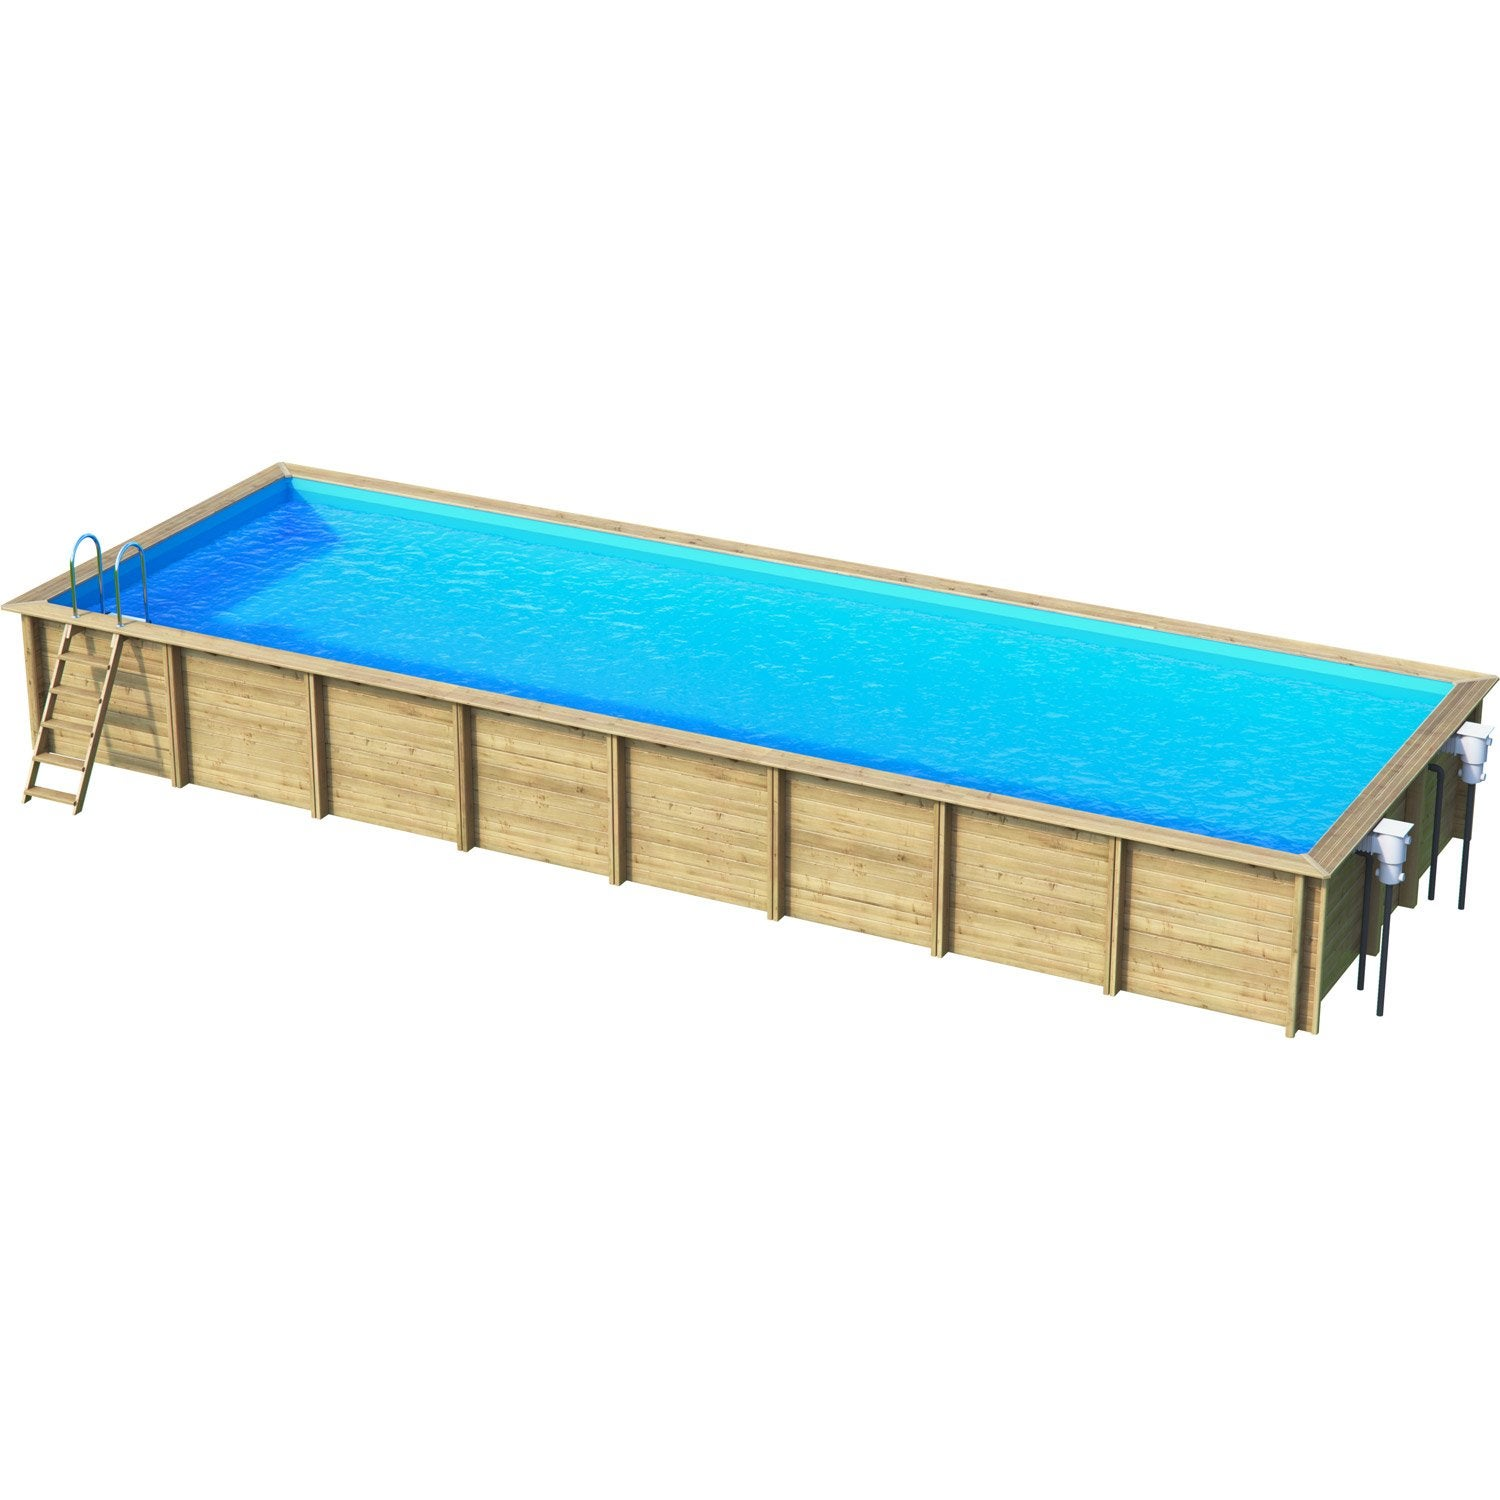 Piscine hors sol tubulaire rectangulaire leroy merlin for Le roy merlin piscine